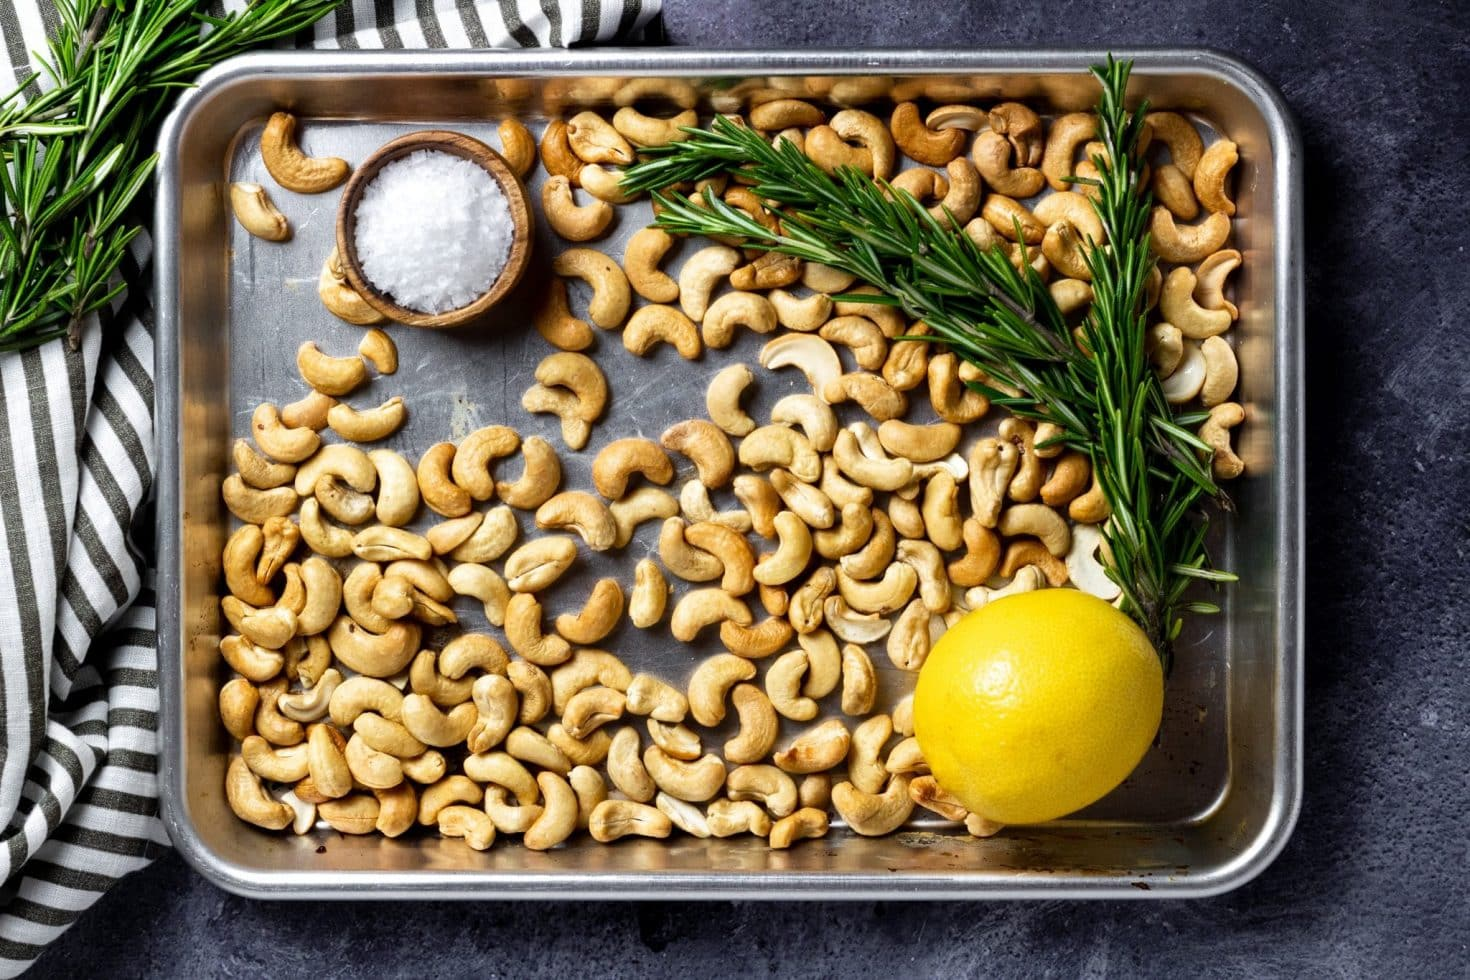 baking sheet with cashews, rosemary, a wooden bowl with flaky sea salt, and a lemon.